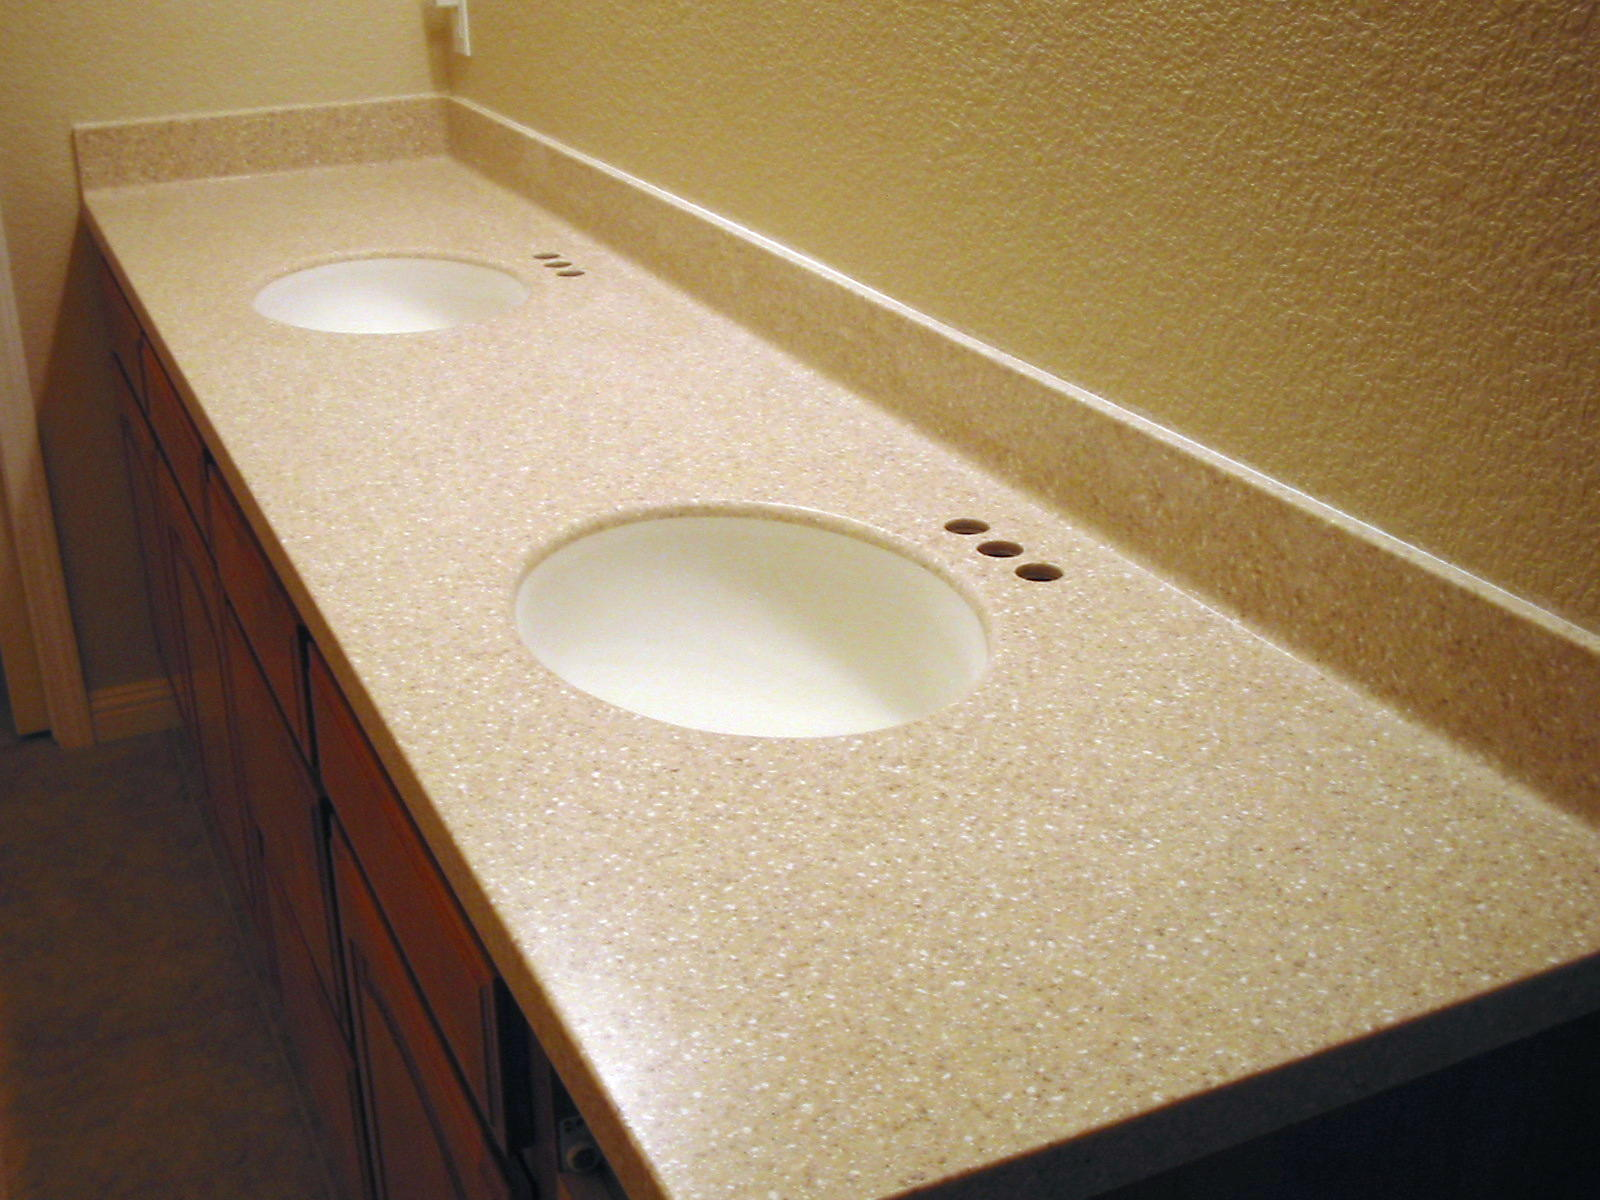 Solid Plastic Countertops D And S Custom Countertops Photo Gallery Acrylic Solid Surface